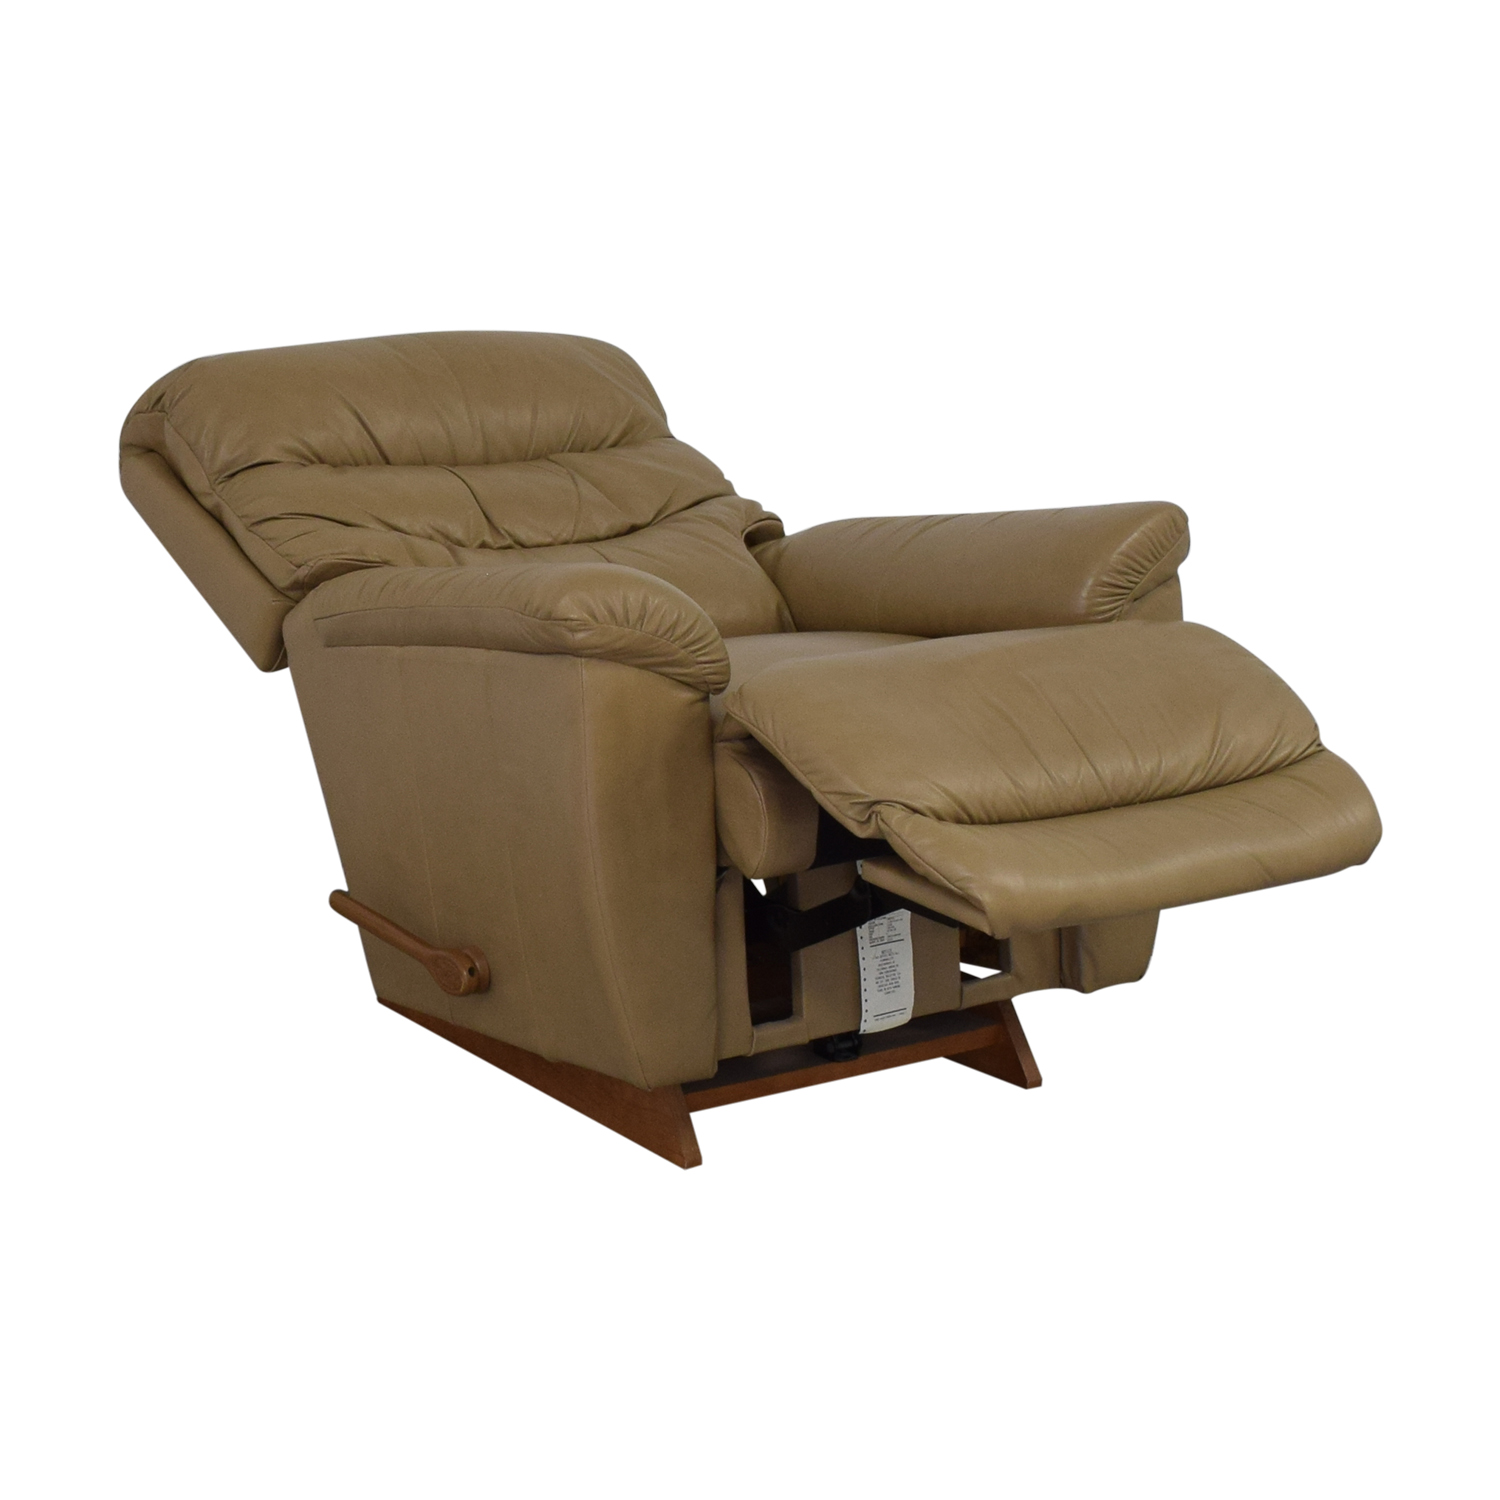 La-Z-Boy Leather Recliner La-Z-Boy